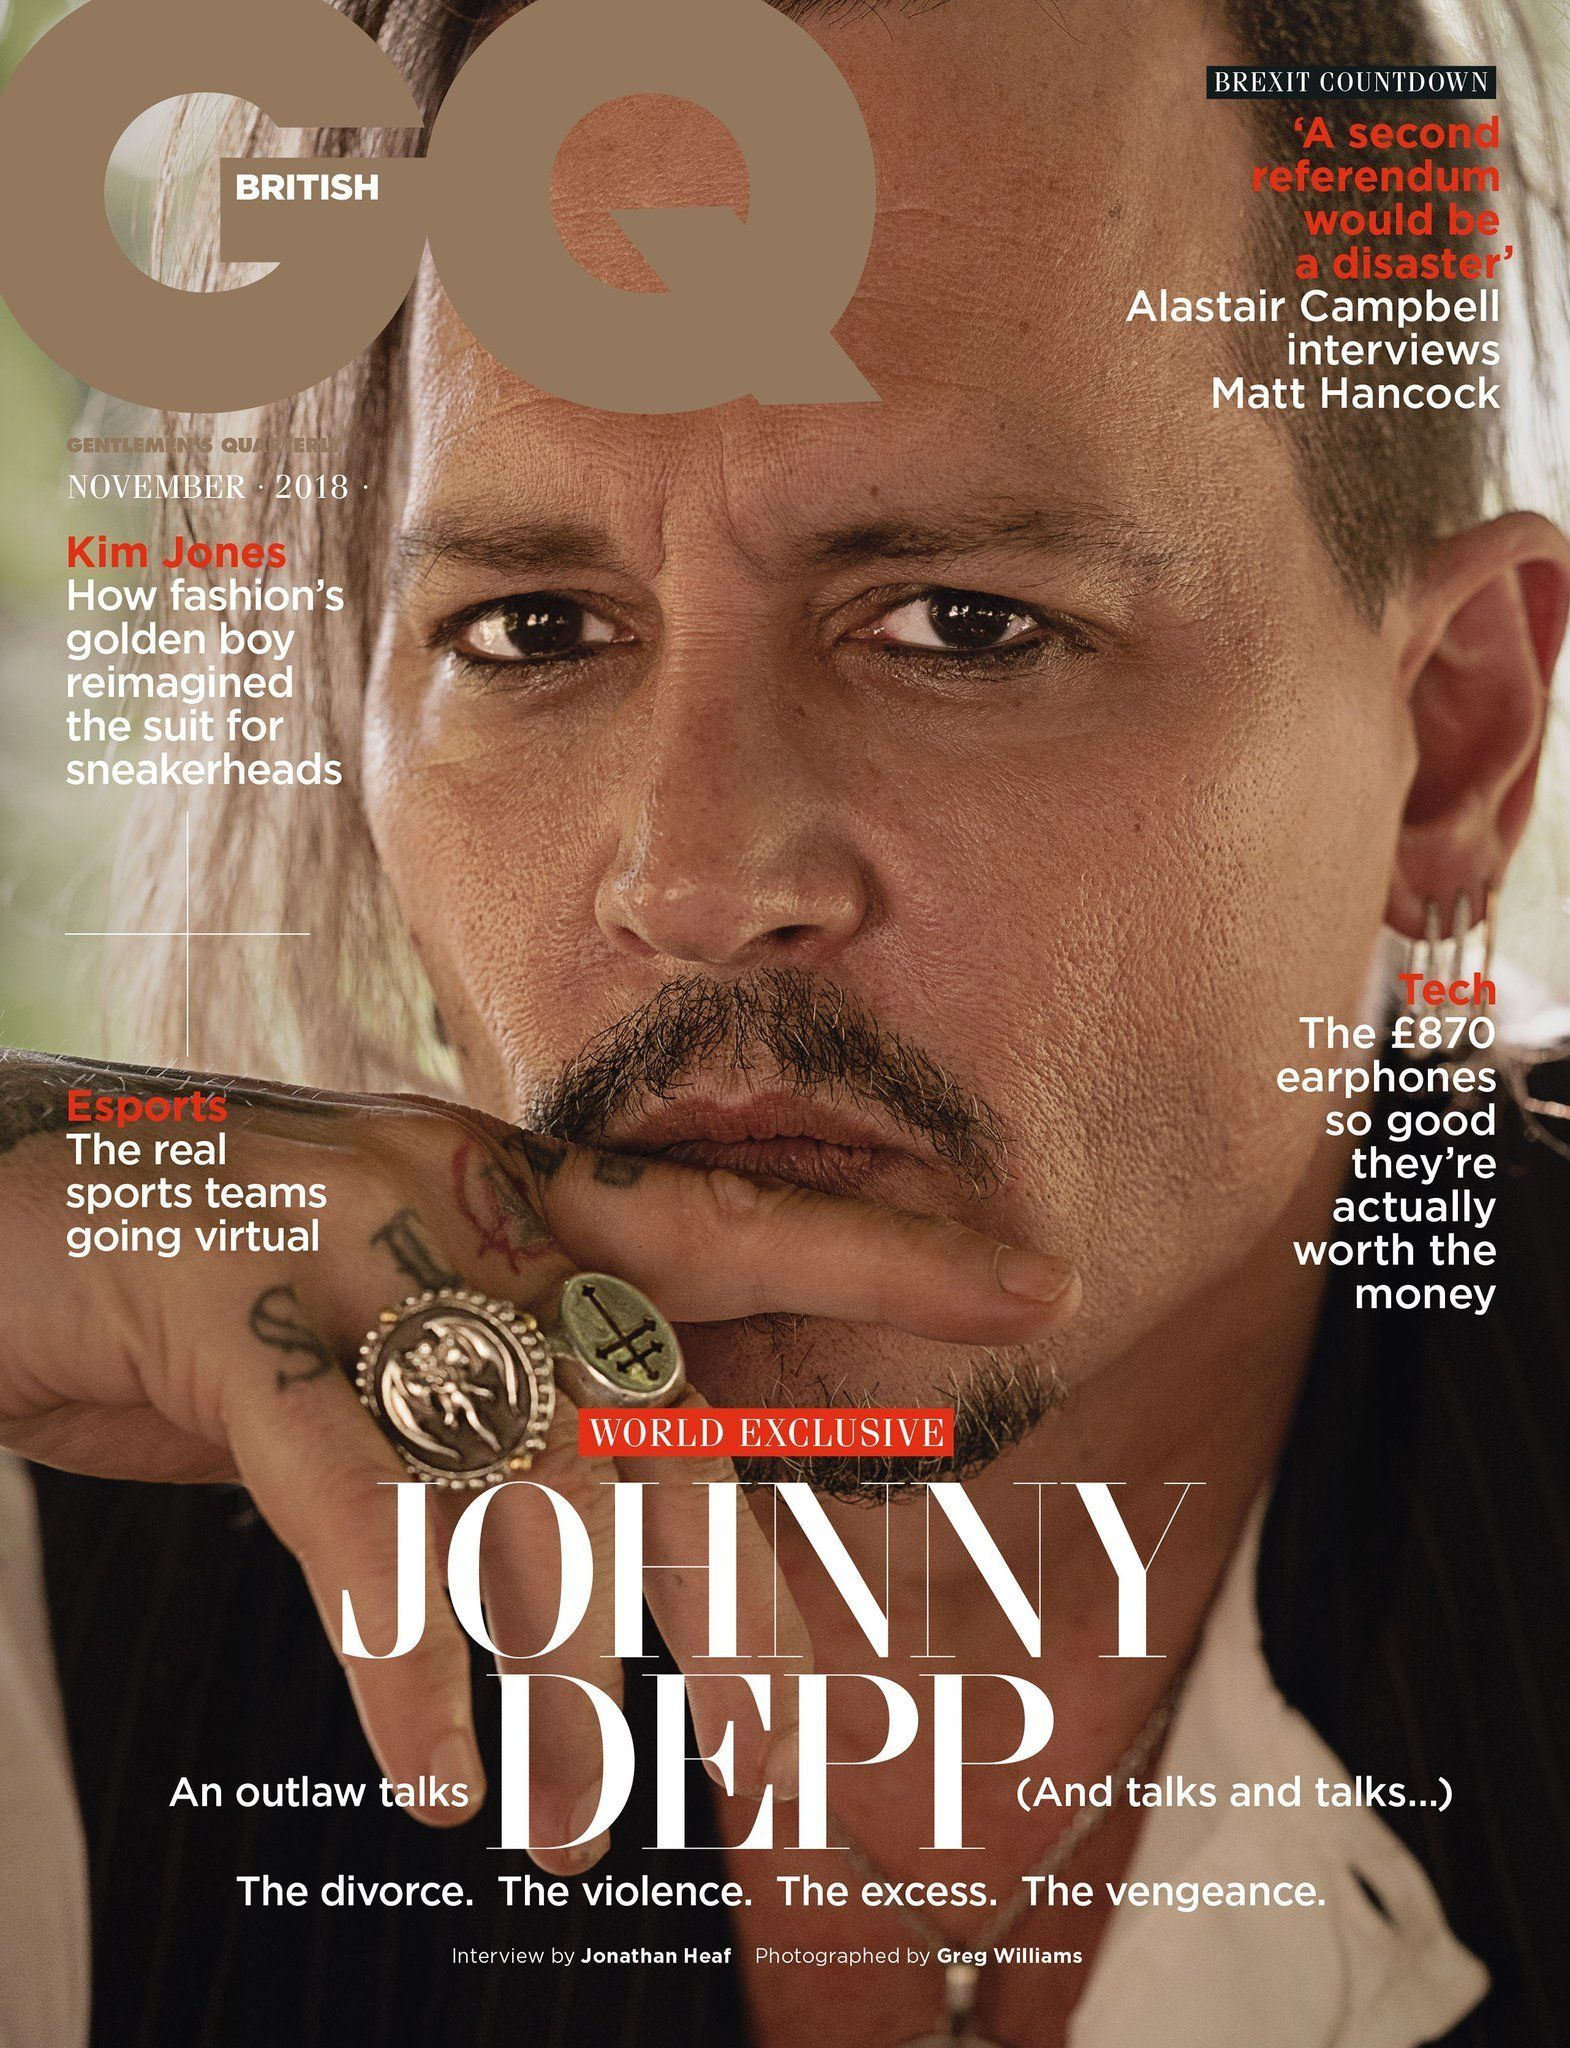 Johnny Depp's 'Outlaw' GQ Cover And Interview Comes Under